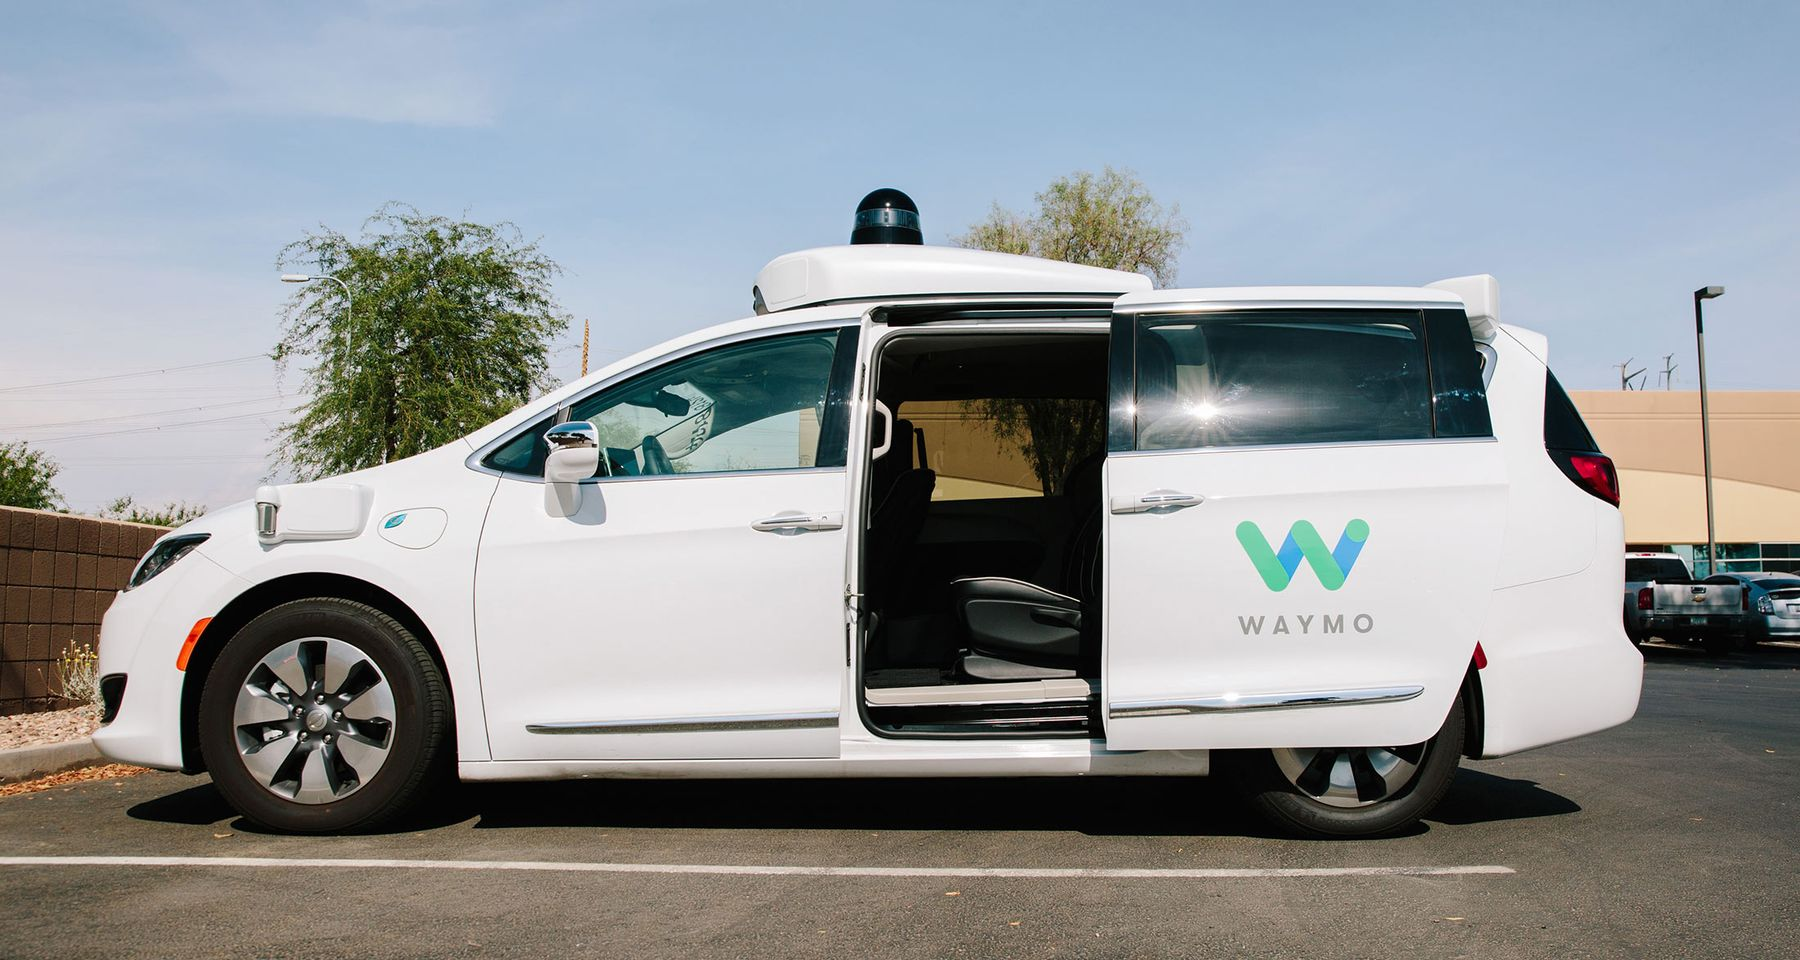 A Waymo LLC Chrysler Pacifica